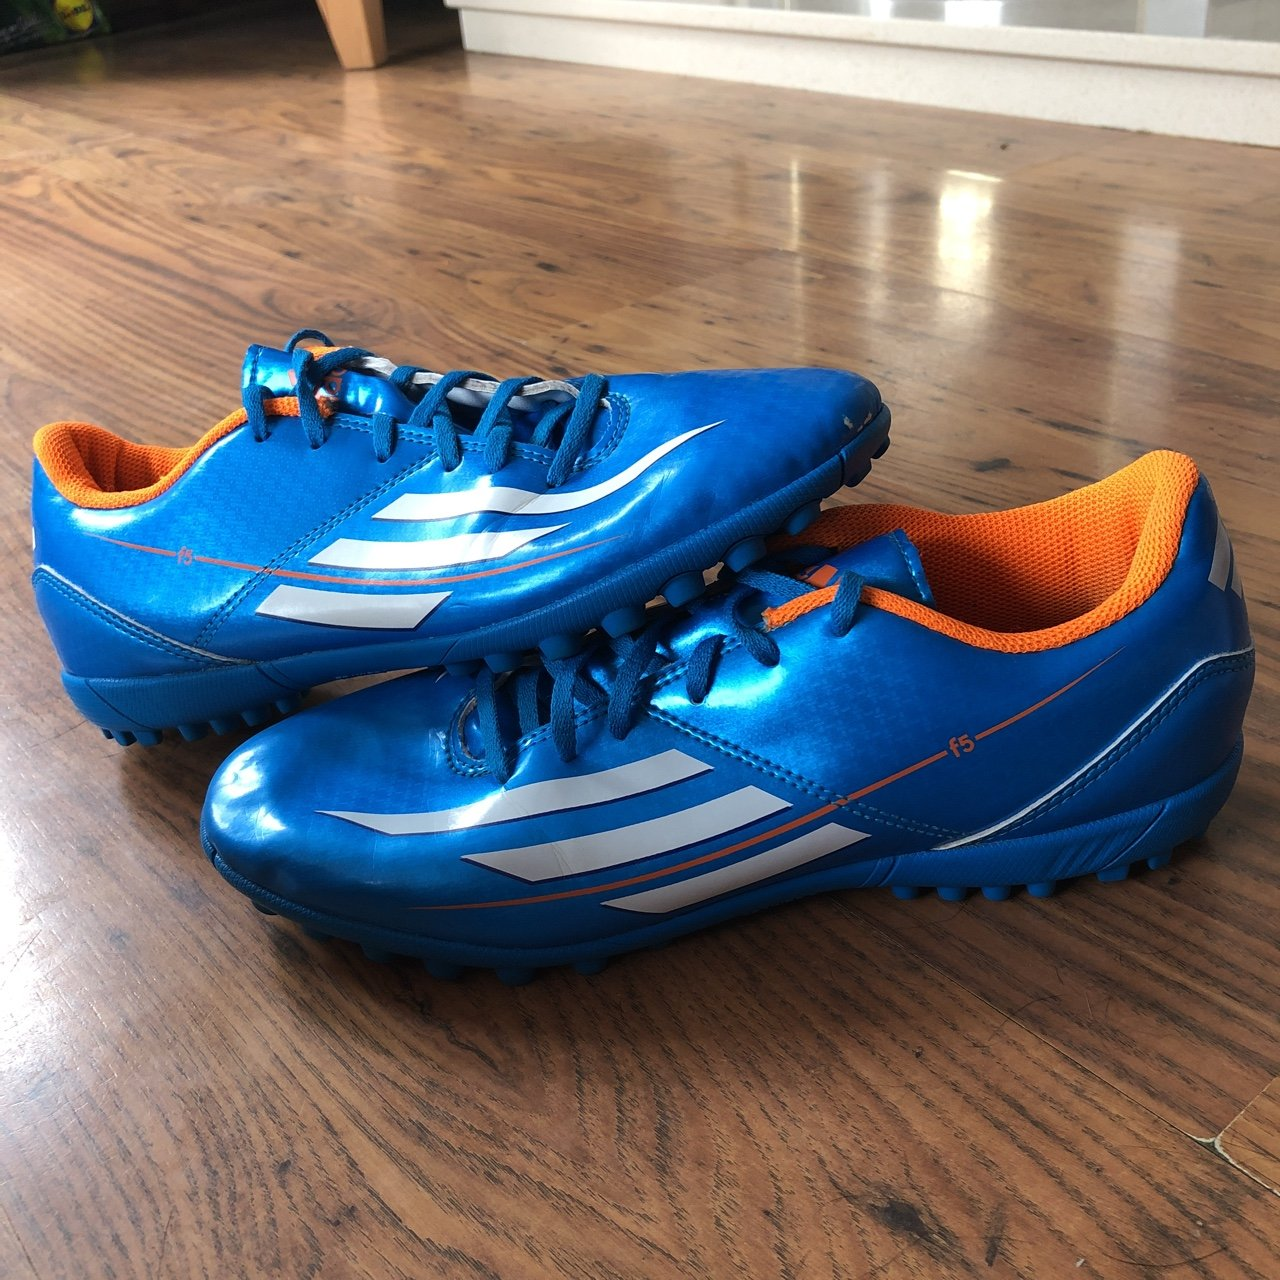 88ff16d0eee3 Adidas F5 TRX Astro Turf Boots UK Size 6 Can be used as fade - Depop